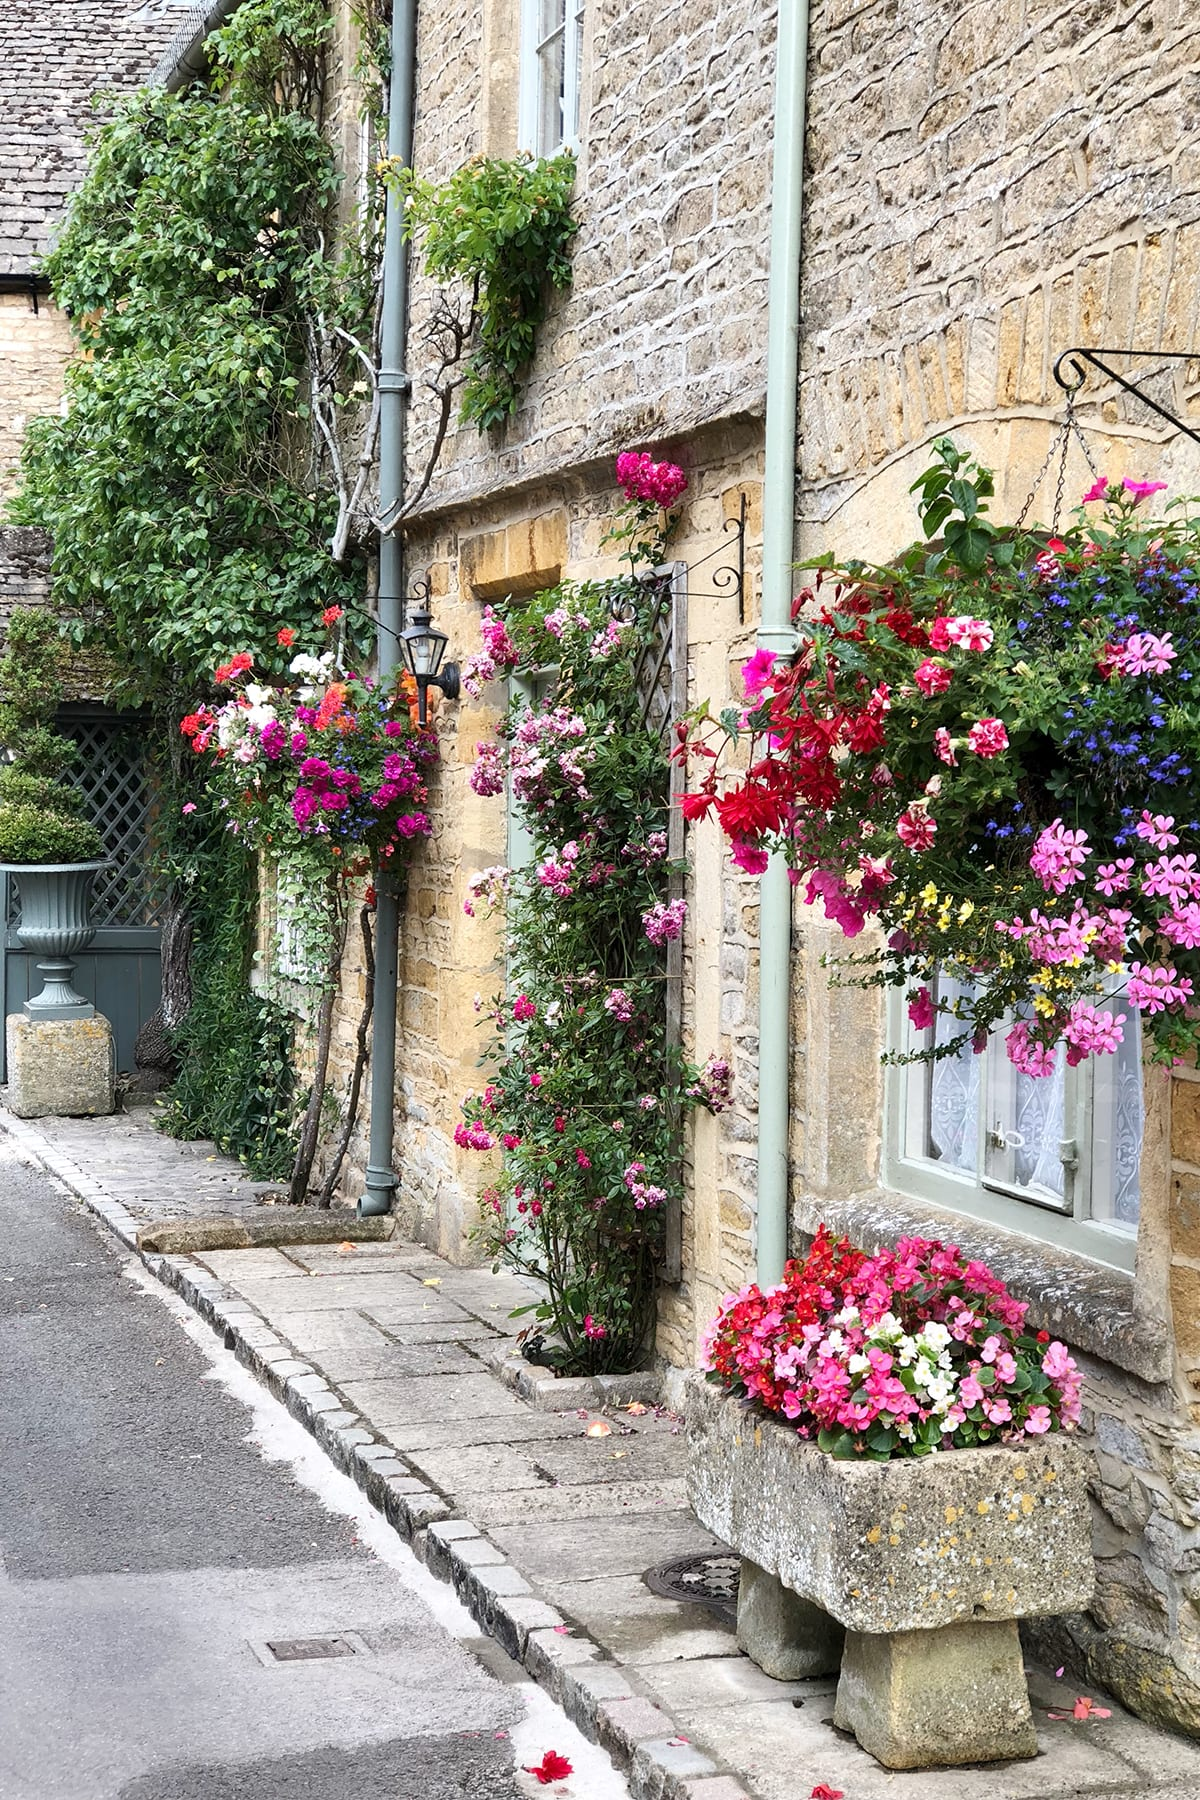 Stow on the wold restaurants